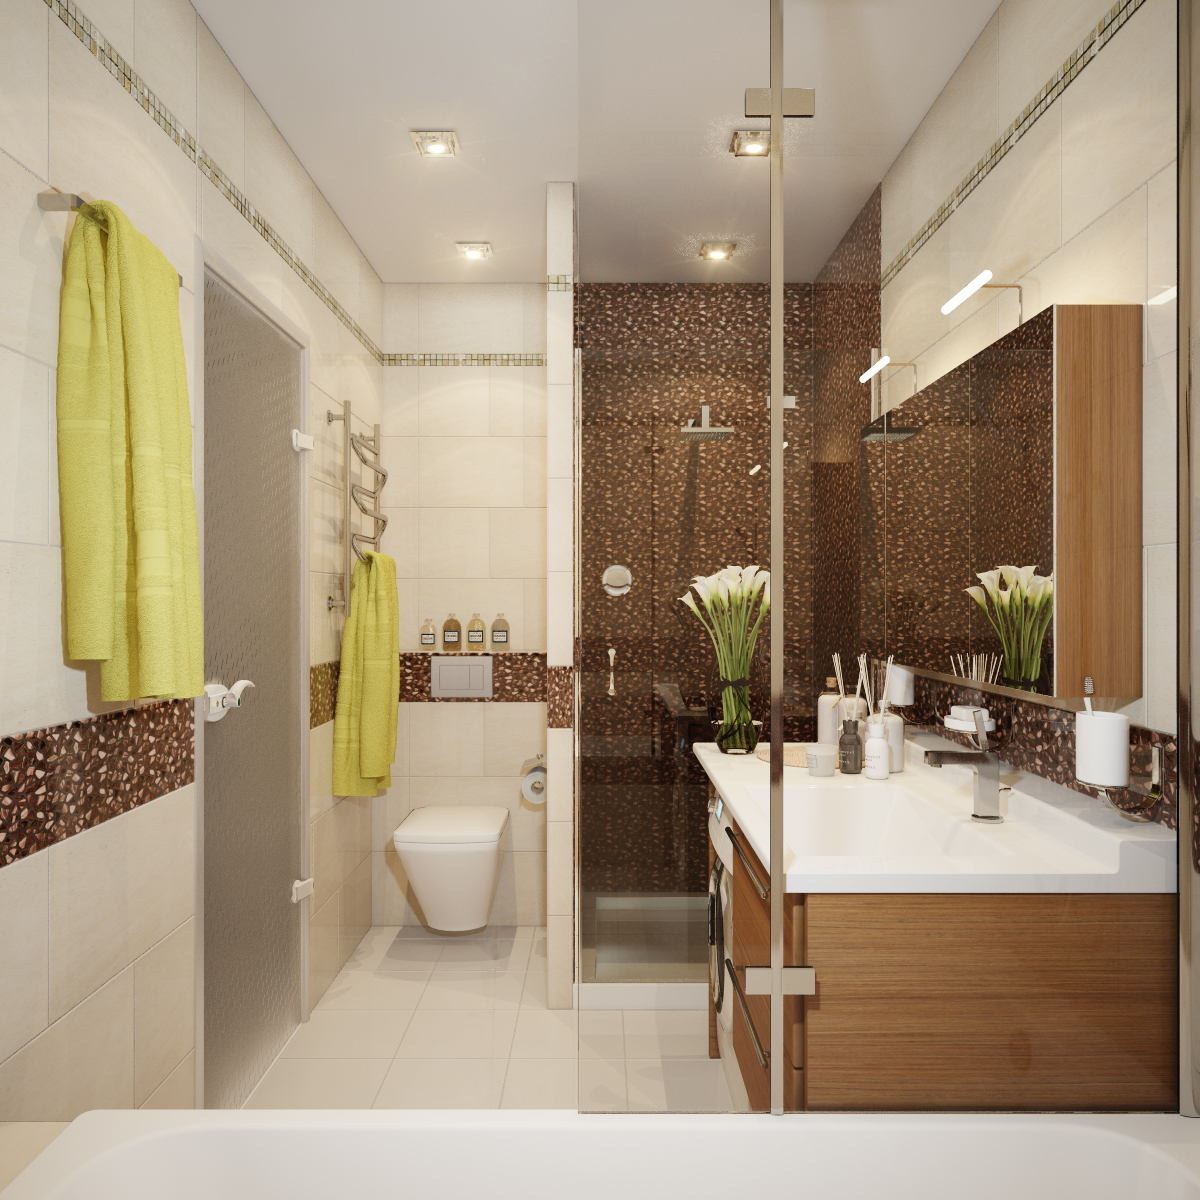 Bathroom Visualization By Happy Irena Interior Design And Visualization Portfolio Happy Irena